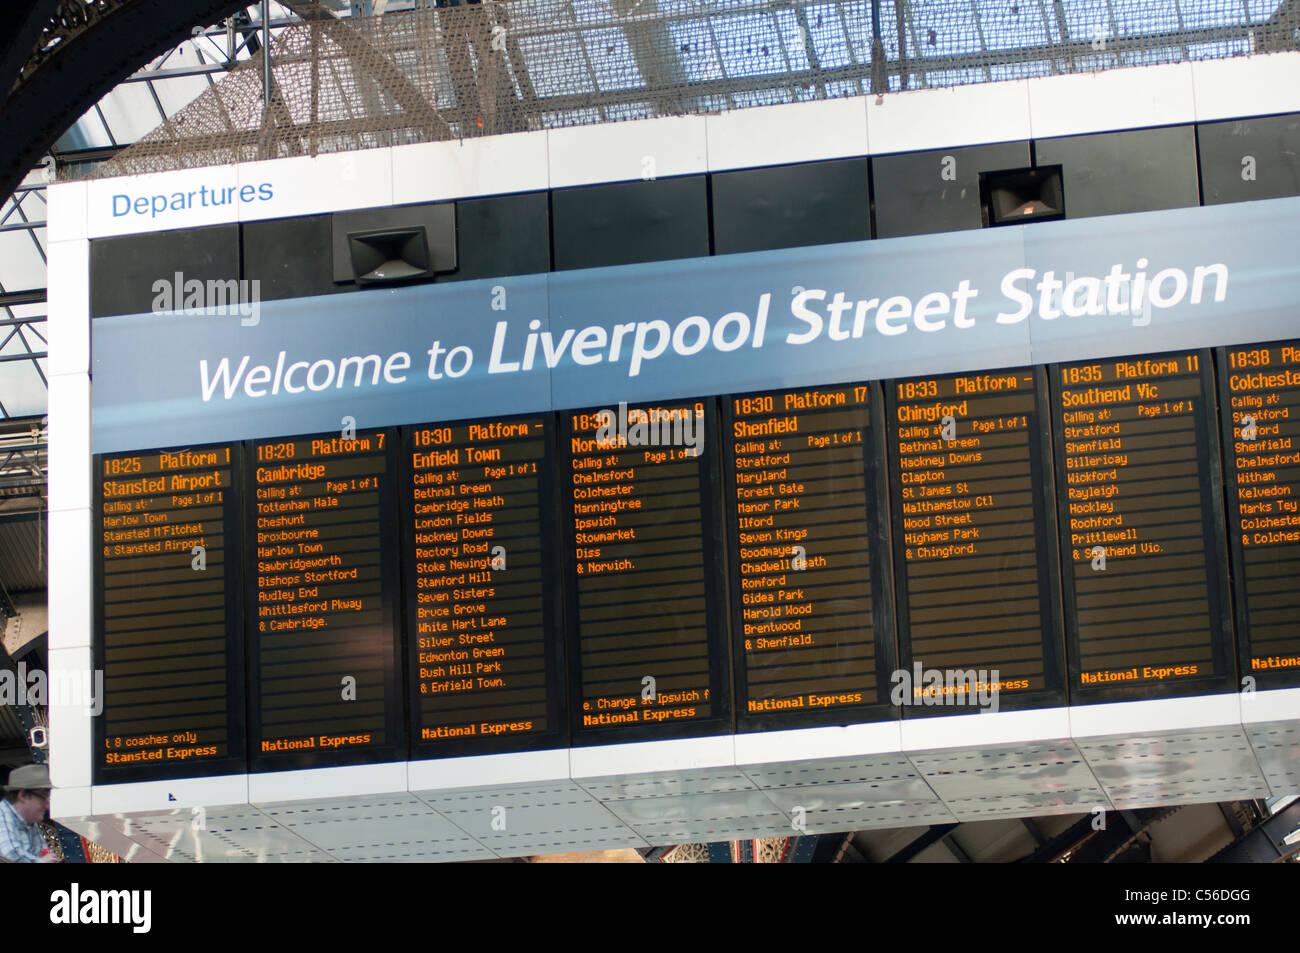 Station information. Liverpool Street station, London Opening hours: Monday – to Tuesday – to Wednesday – to